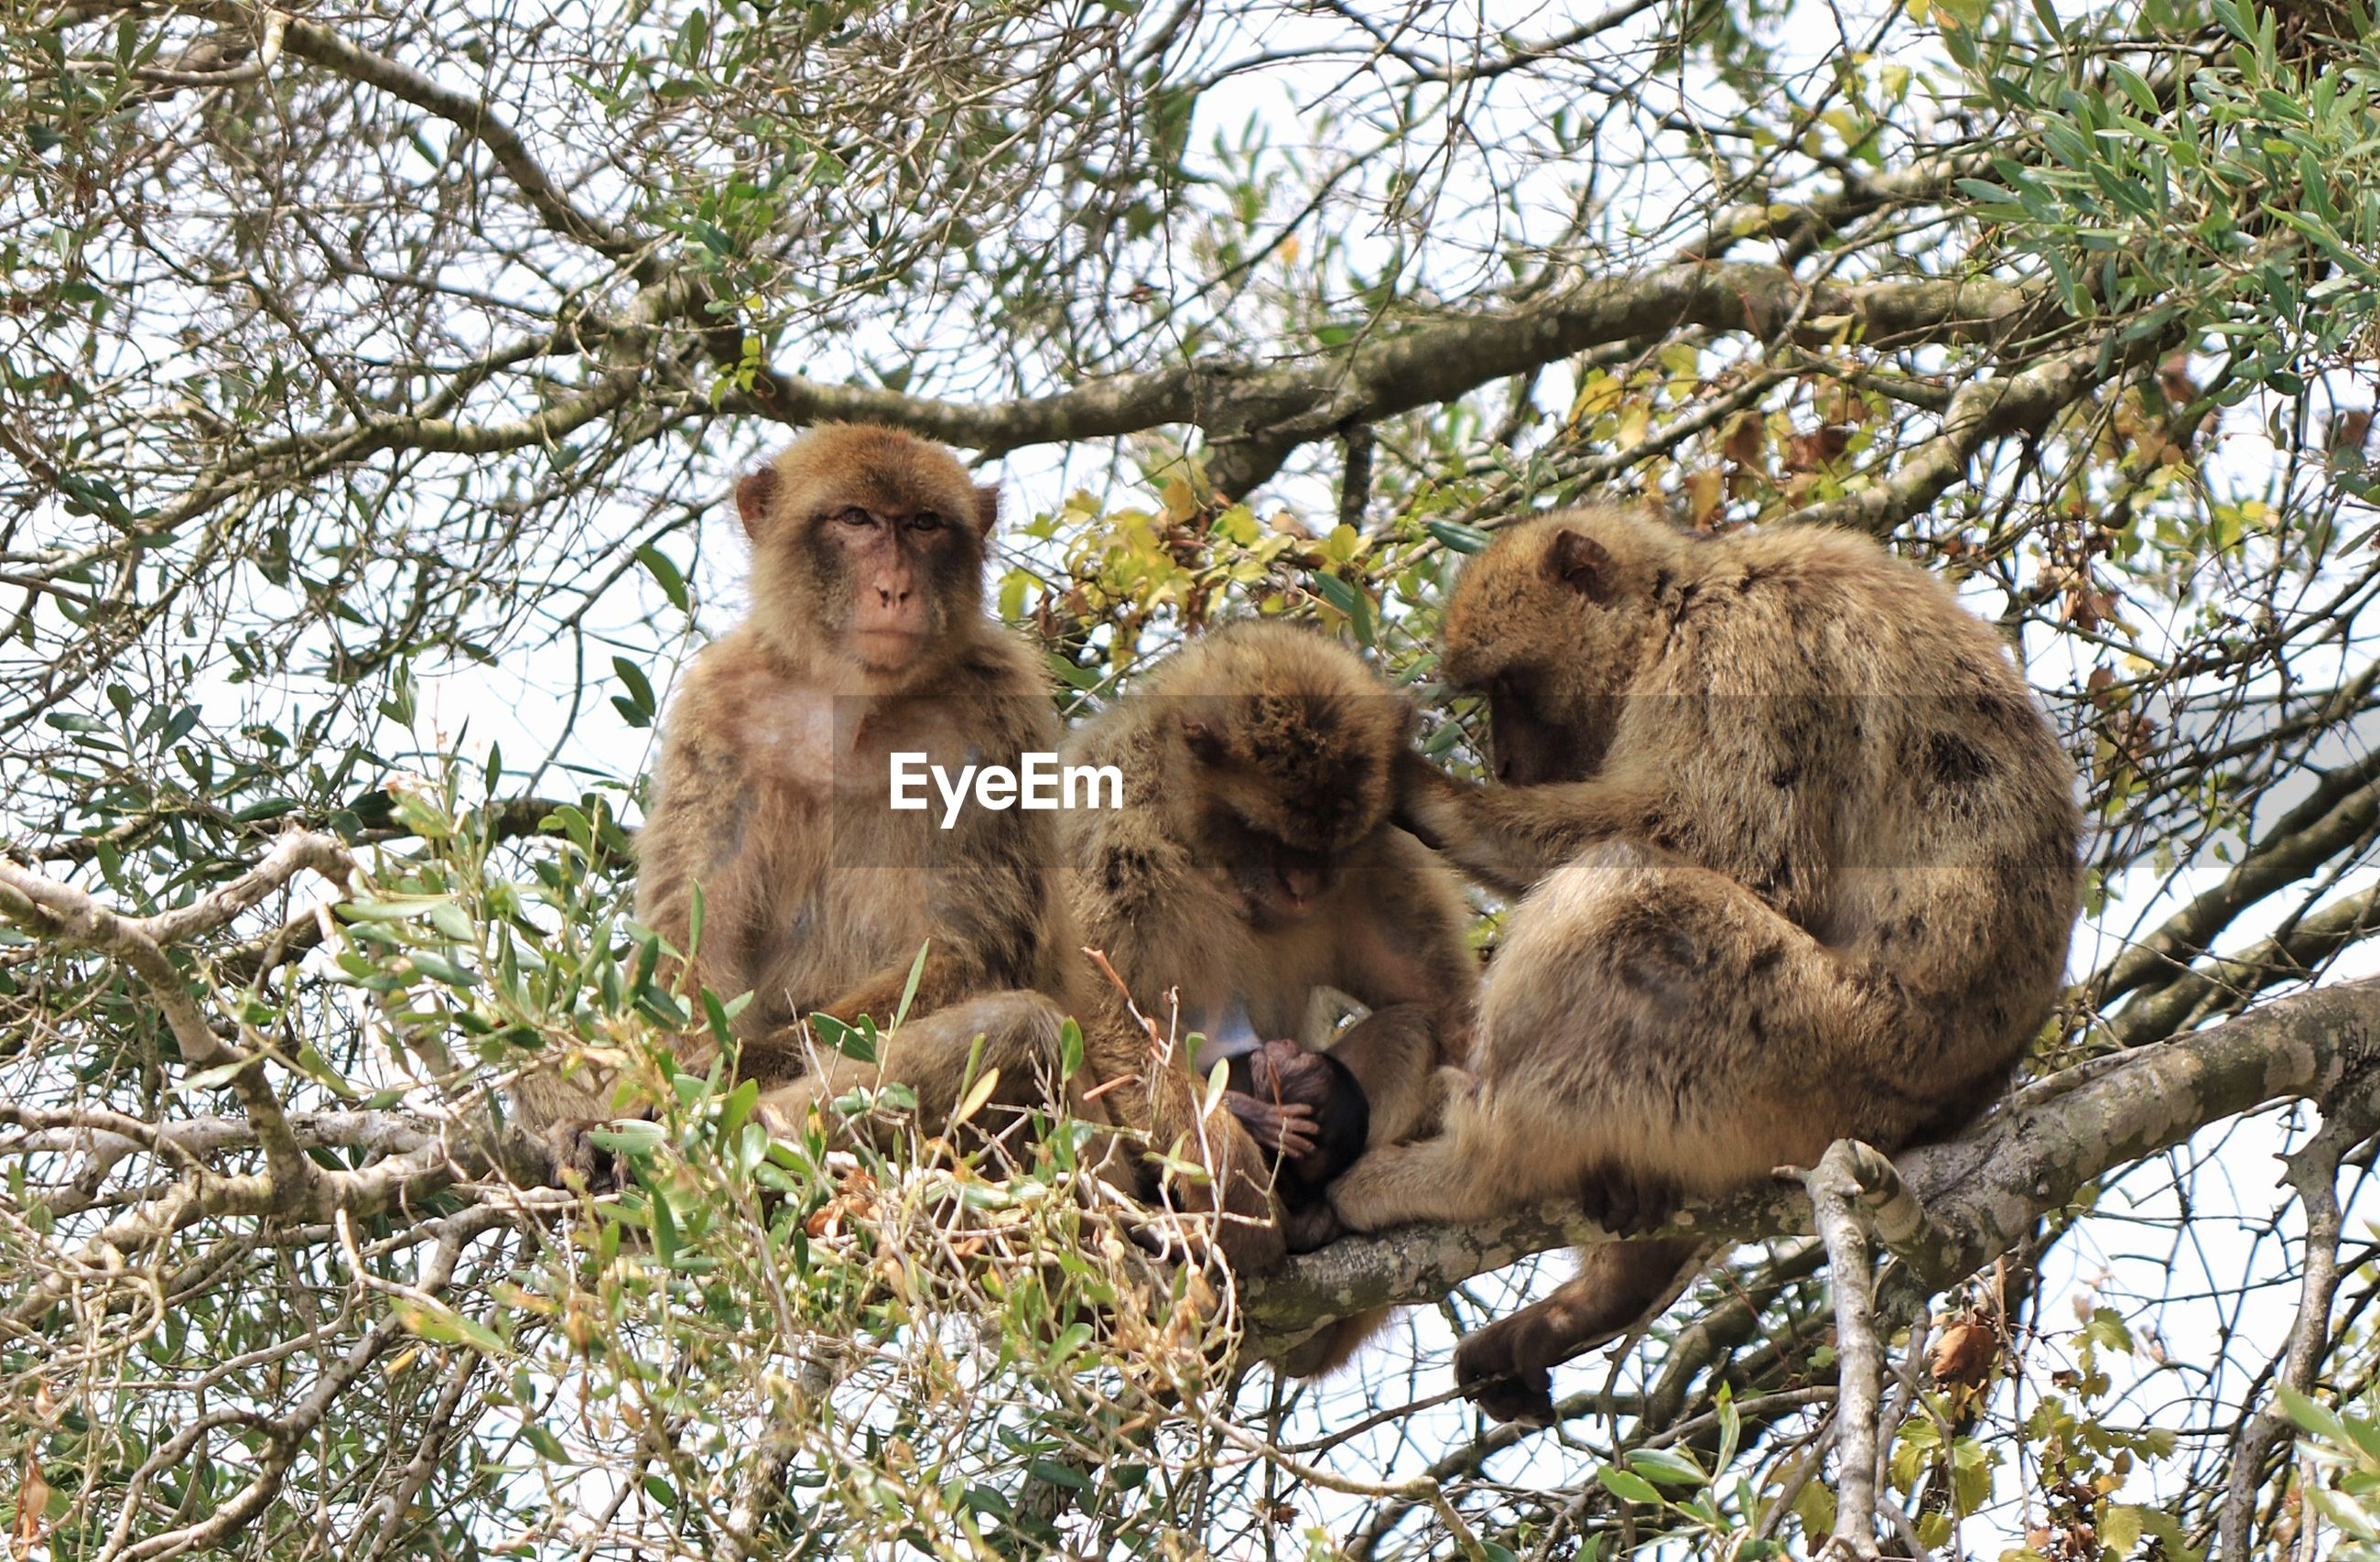 Low angle view of monkeys on tree in forest